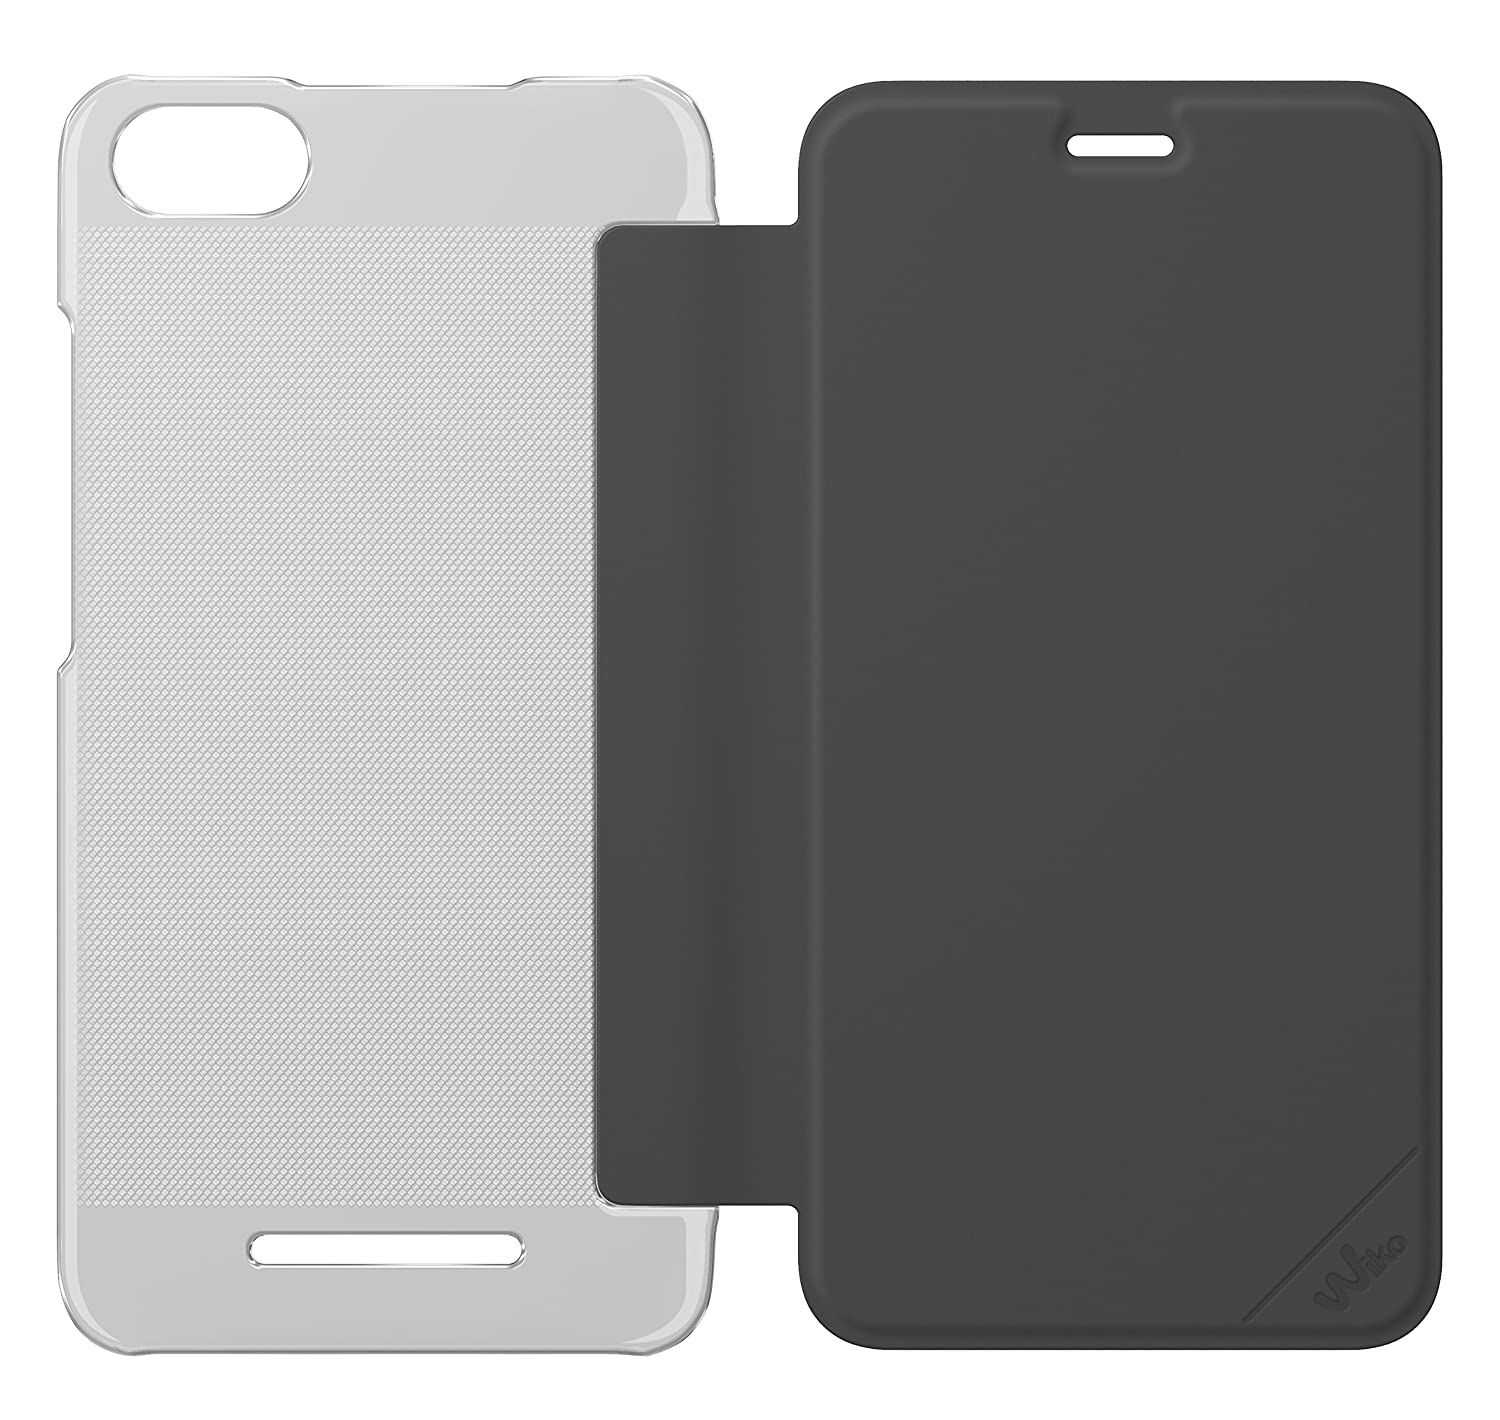 Amazon.com: Wiko Game Changer JERRY Folio Gray - Cell Phone ...